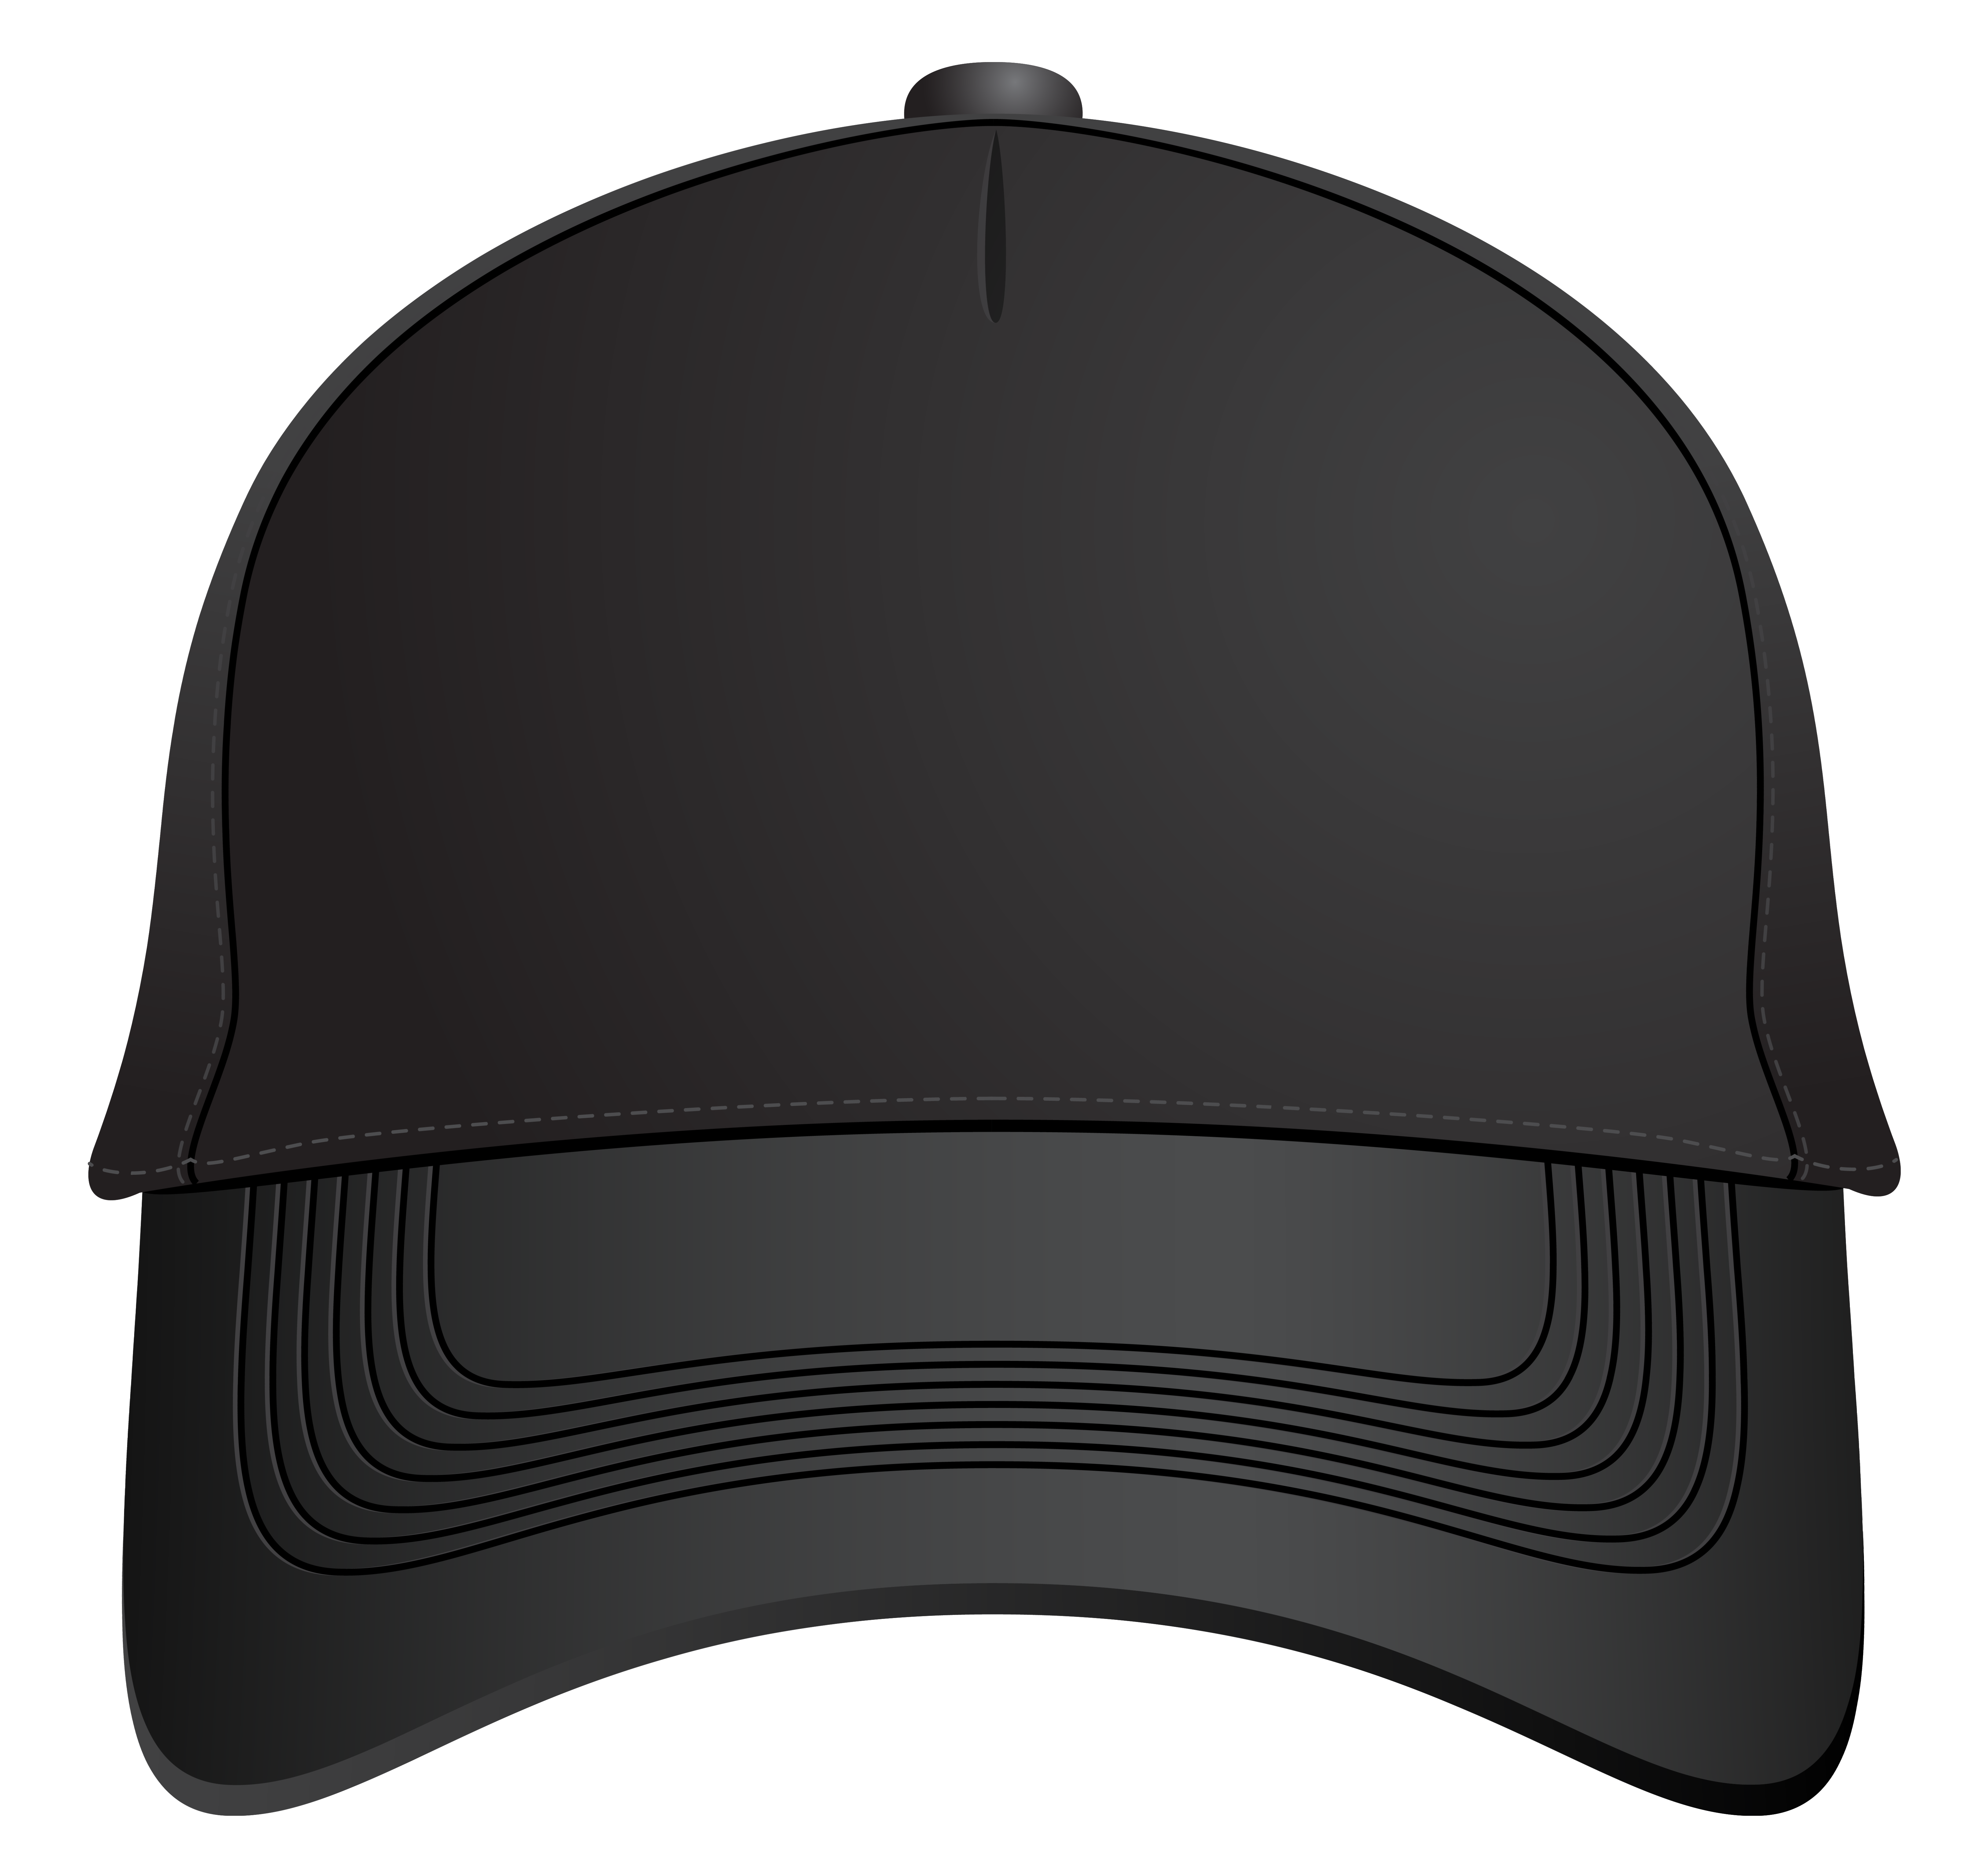 Black baseball cap clipart graphic library Black Baseball Cap PNG Clipart - Best WEB Clipart graphic library